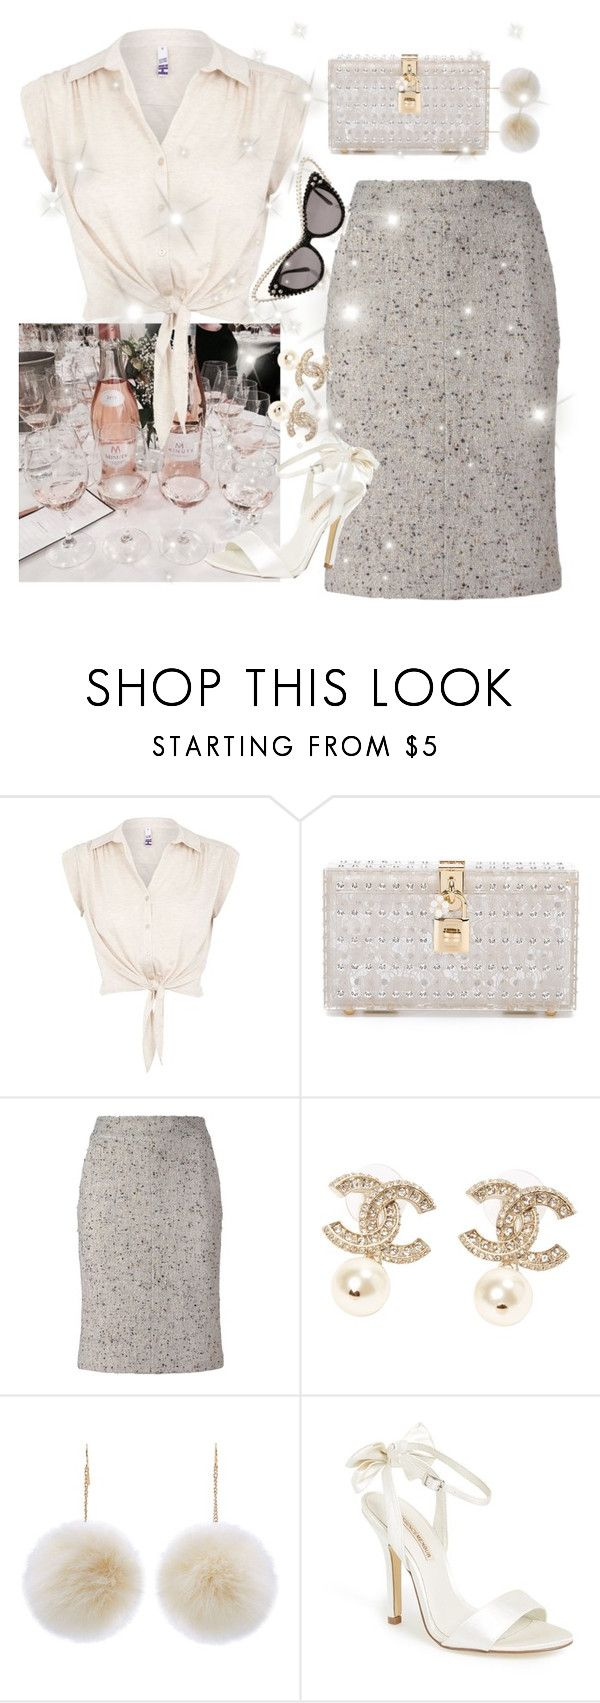 """""""Chanel so glam"""" by faanciella ❤ liked on Polyvore featuring H! by Henry Holland, Dolce&Gabbana, Chanel, New Look, Menbur and A-Morir by Kerin Rose"""